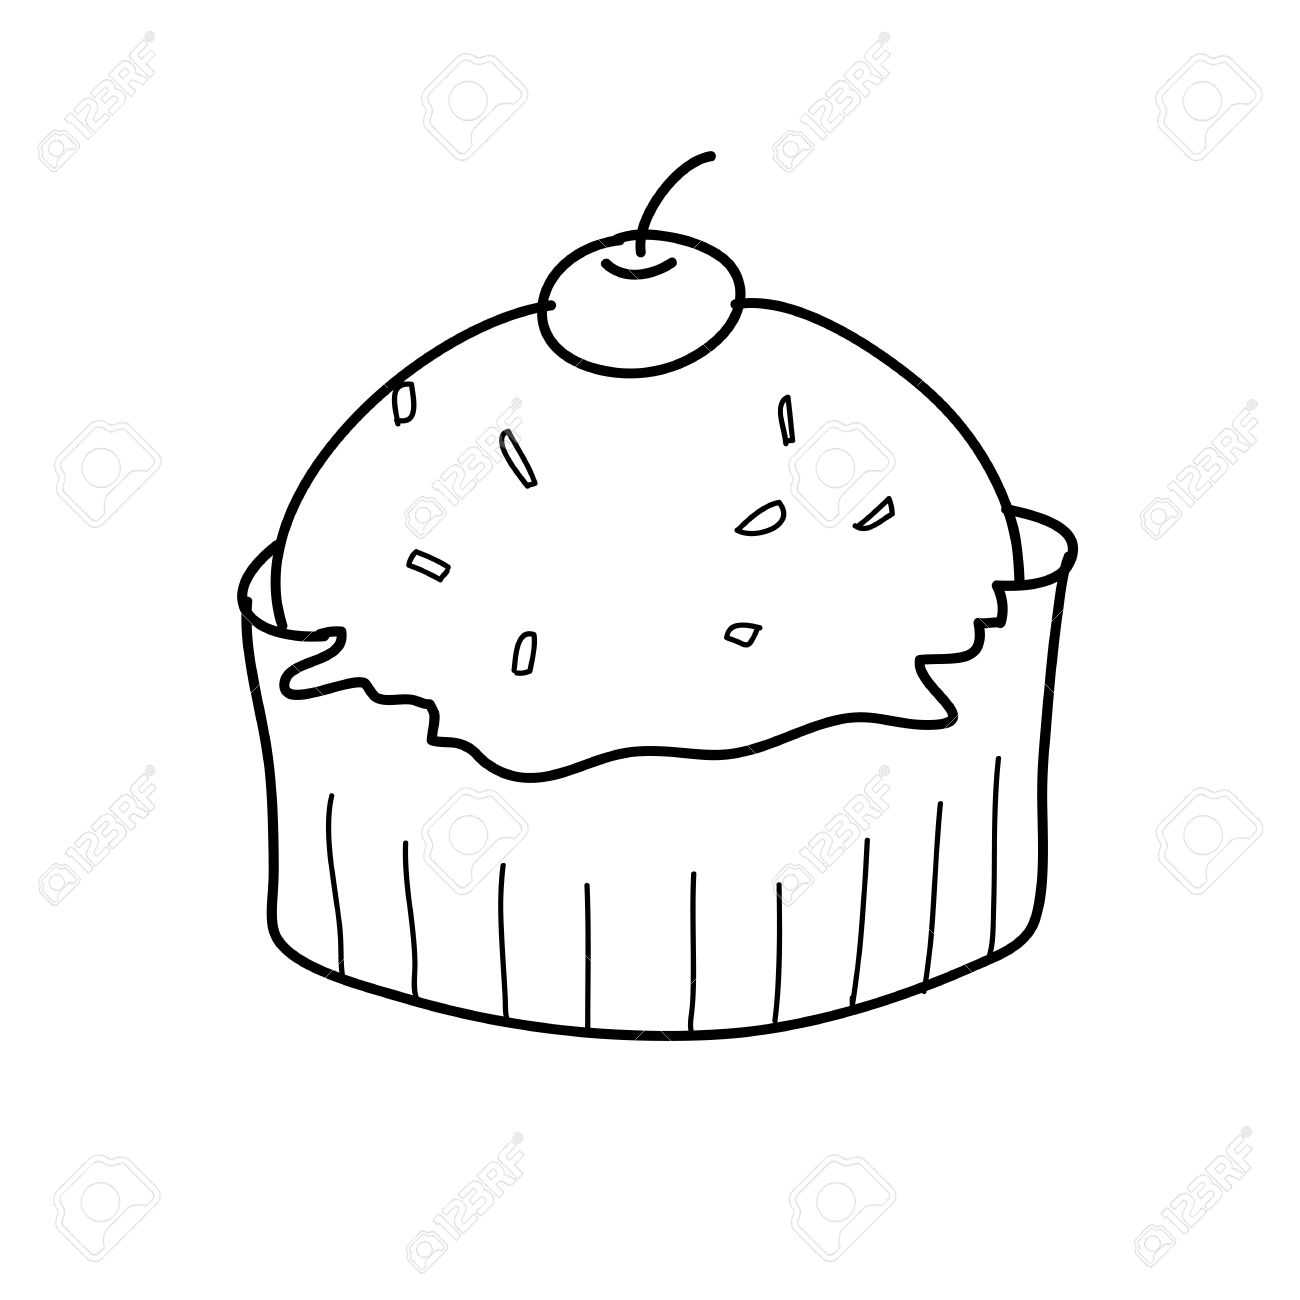 1300x1300 Cup Cake Sketch In Black And White Style Free Hand Drawing Royalty